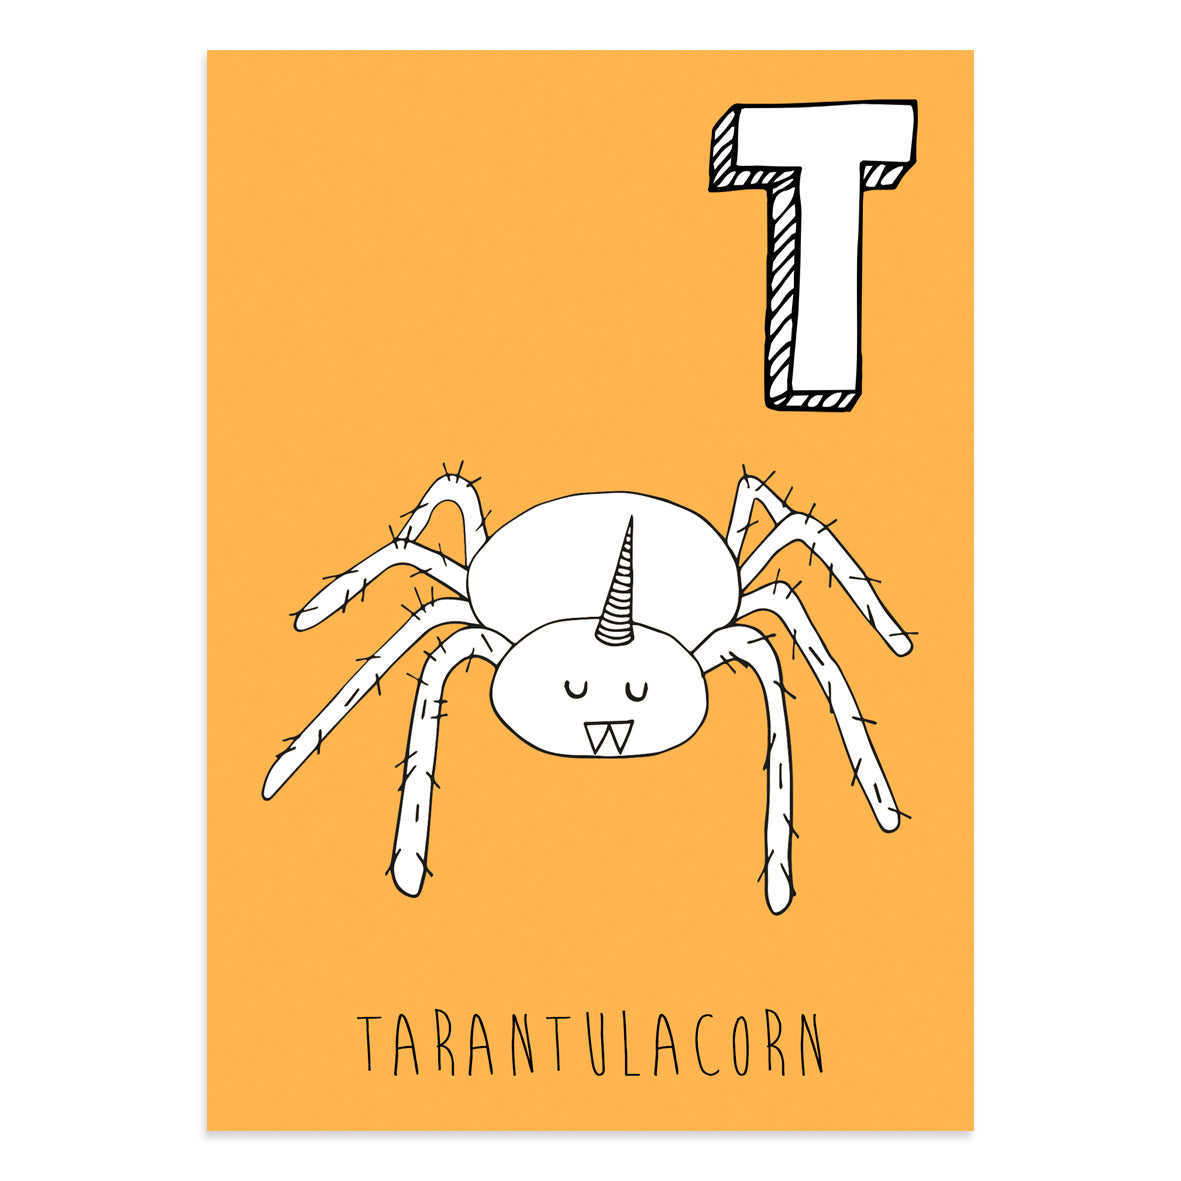 Unicorn postcard featuring the letter T for tarantulacorn